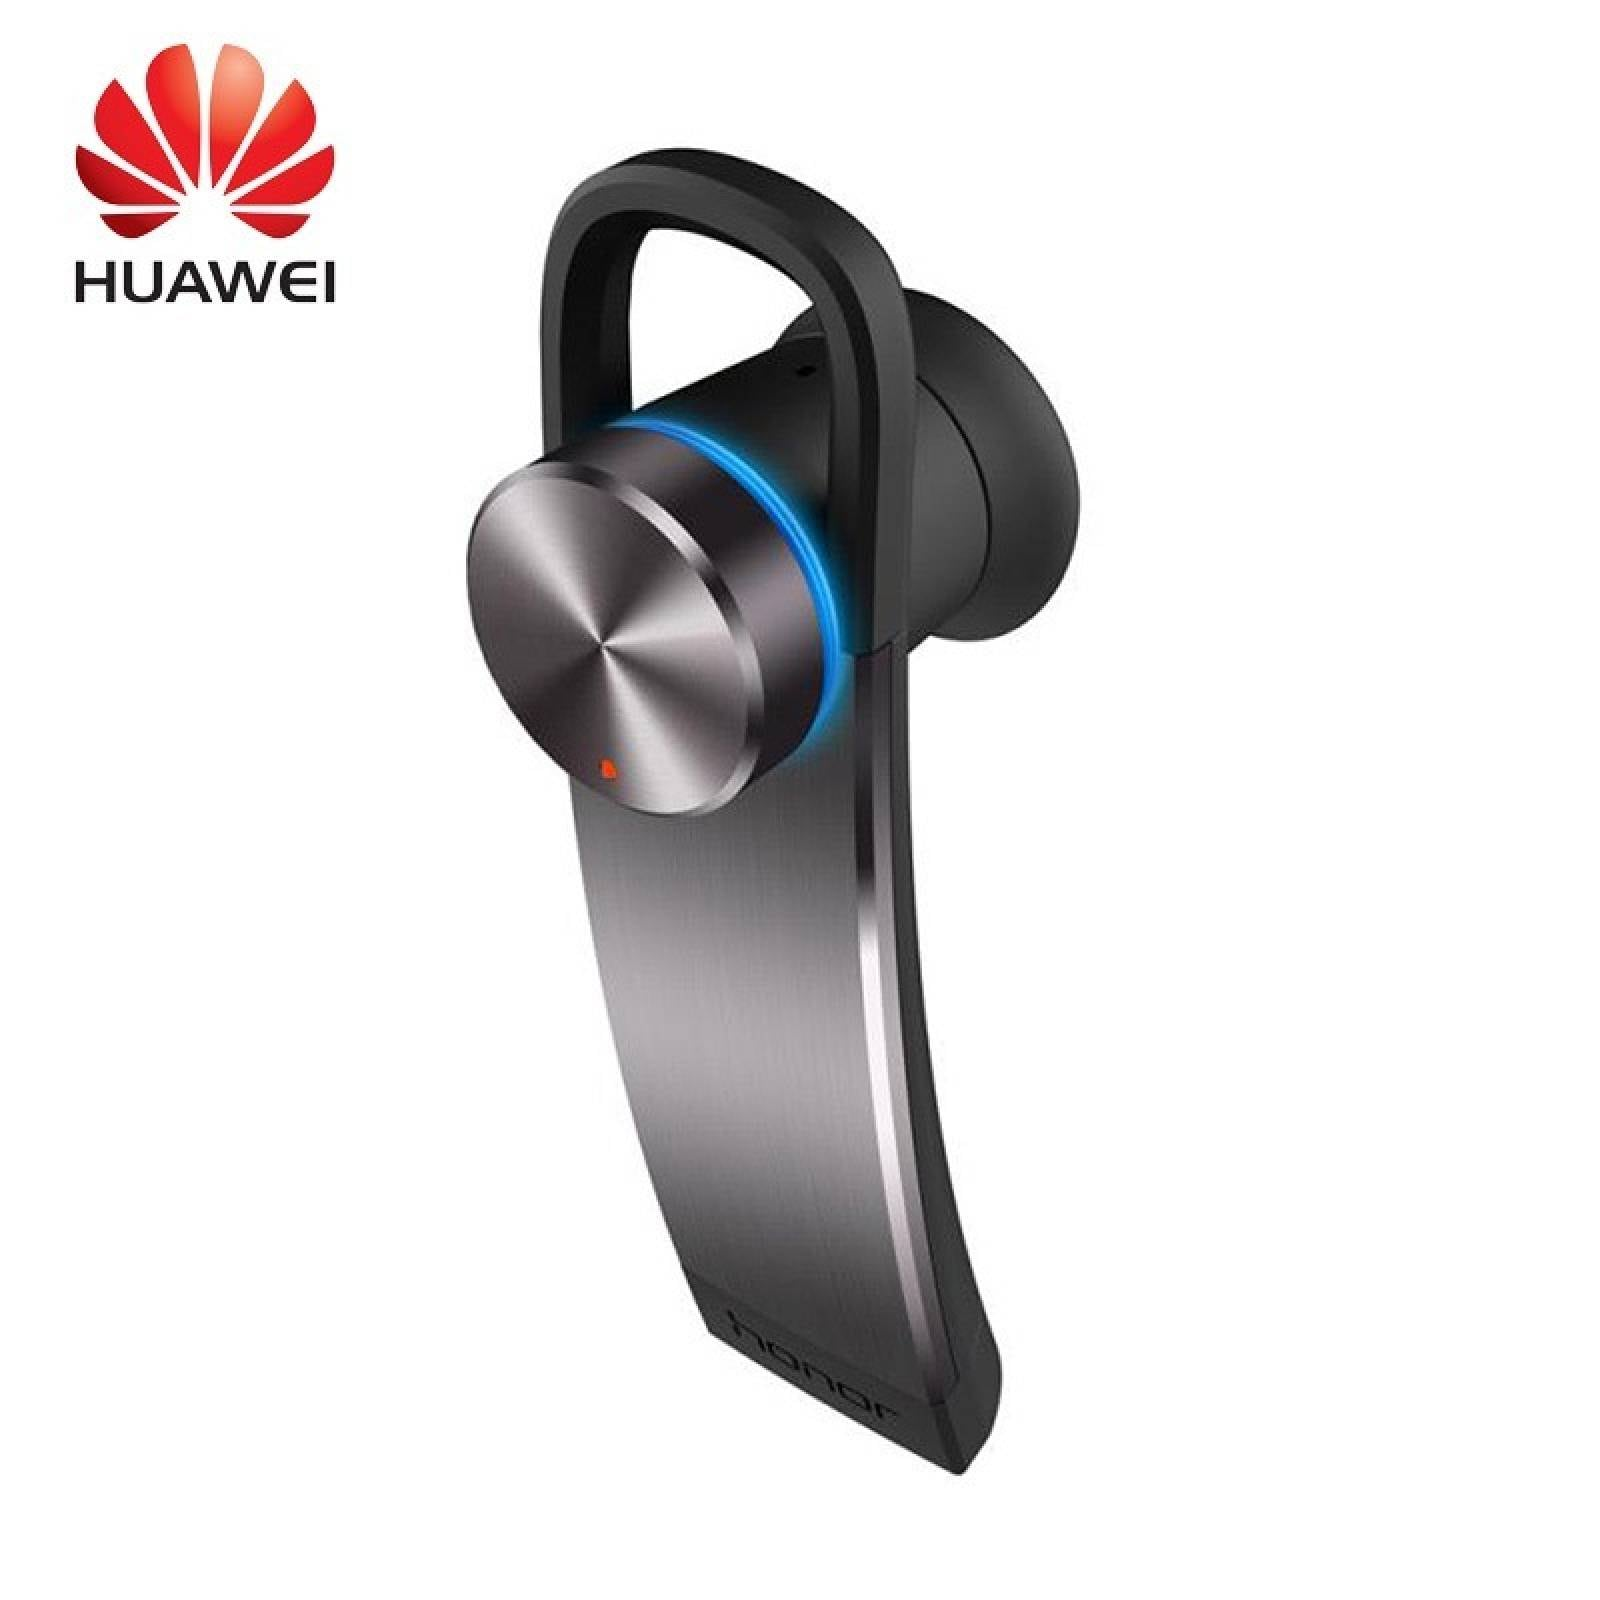 Huawei Manos Libres Manos Libres Huawei Bluetooth Headset Whistle Am07c